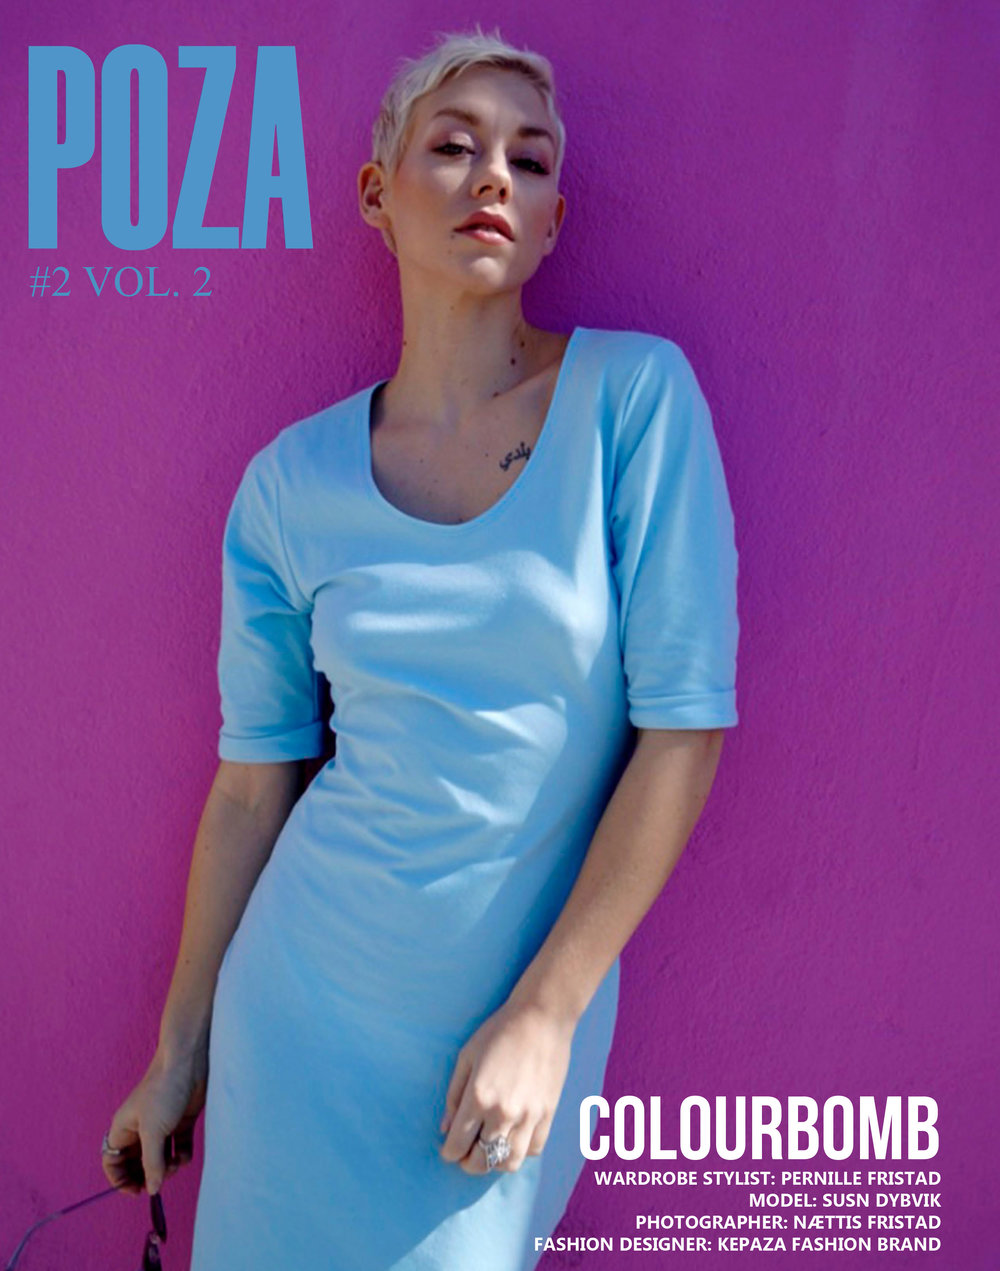 Cover of Poza magazine